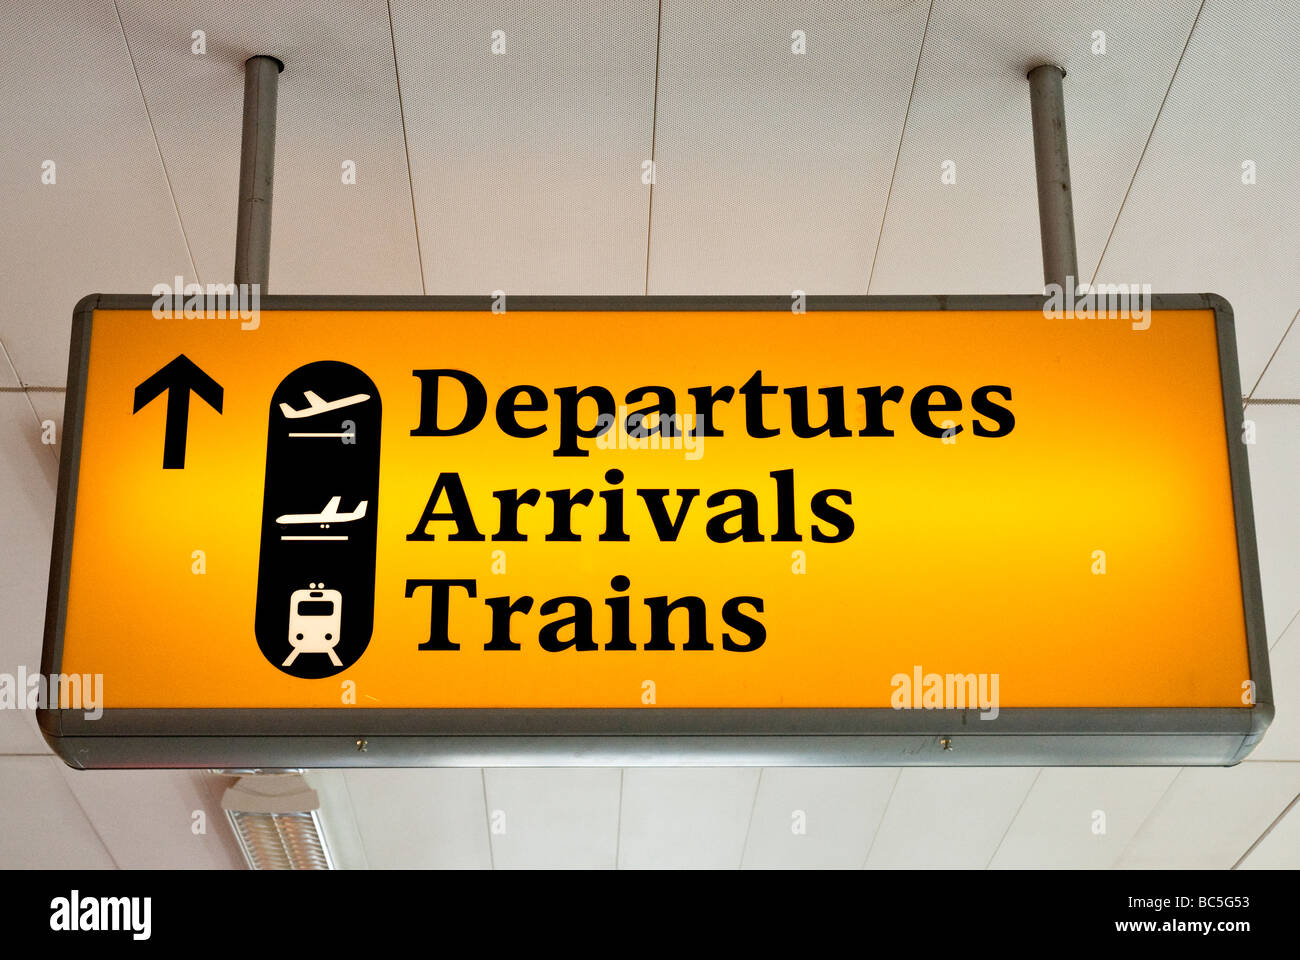 Departures and arrivals sign at airport - Stock Image